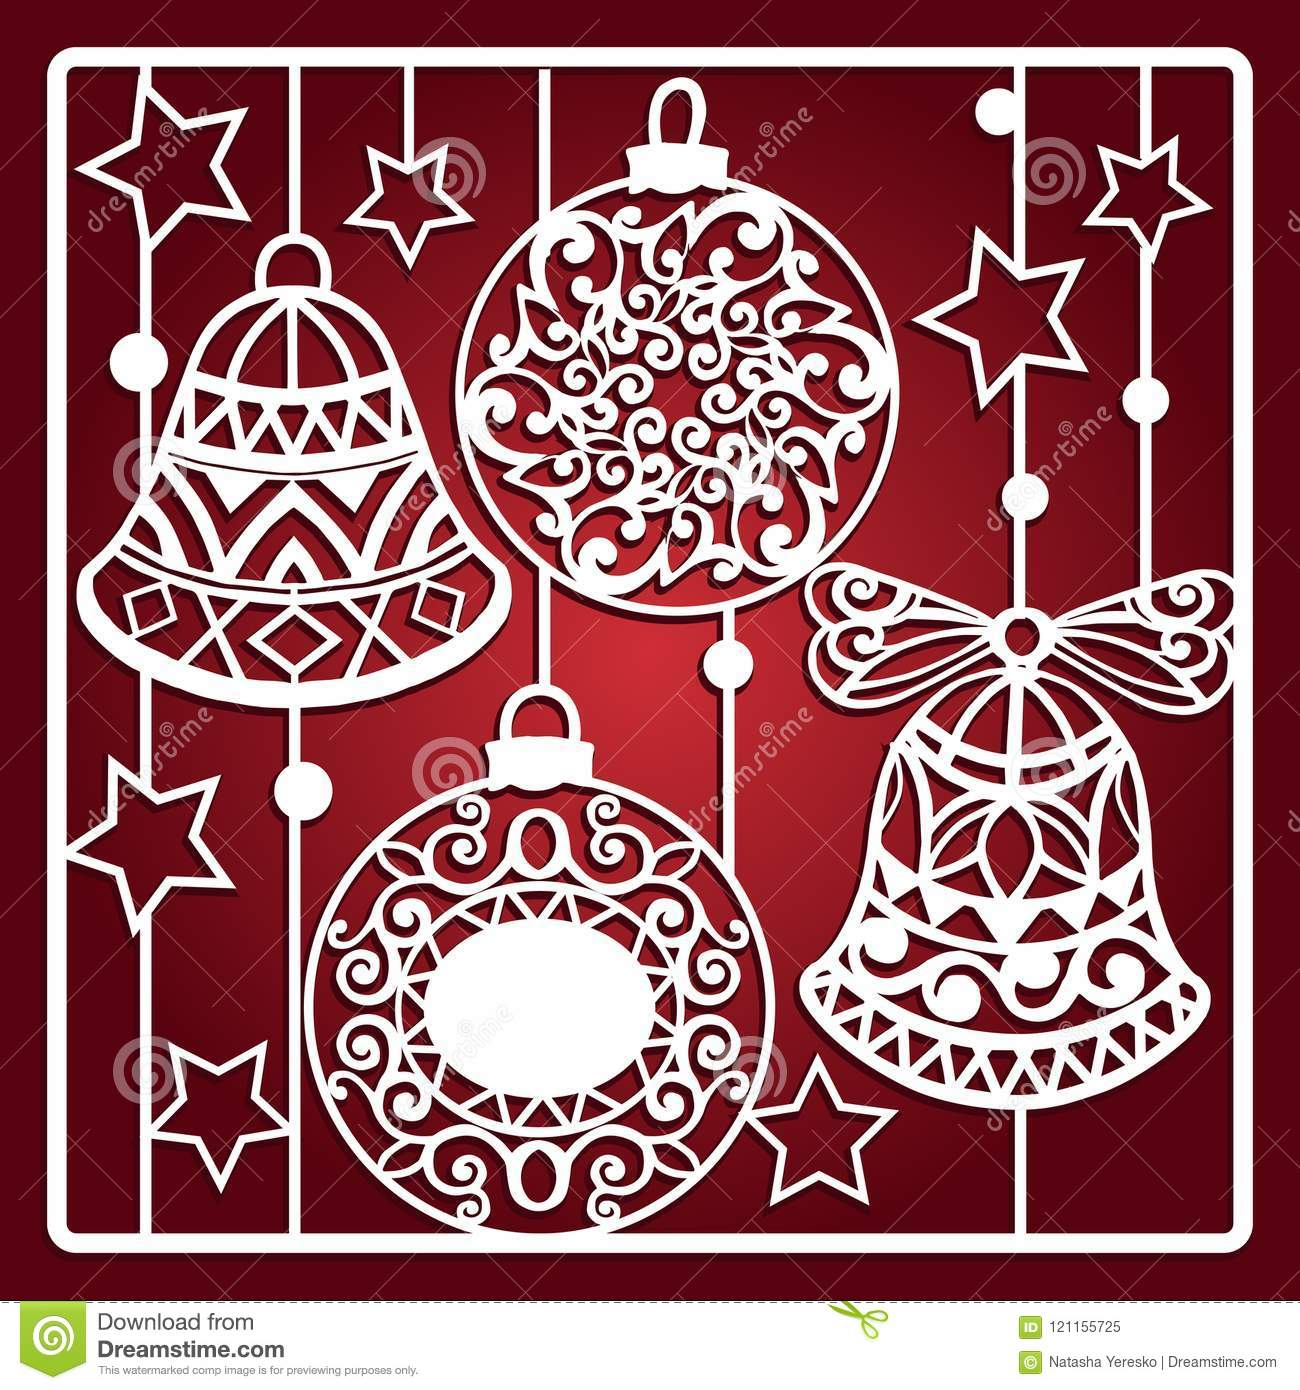 download christmas card with bells for laser cutting laser cutting template christmas gift for - Laser Cut Christmas Cards